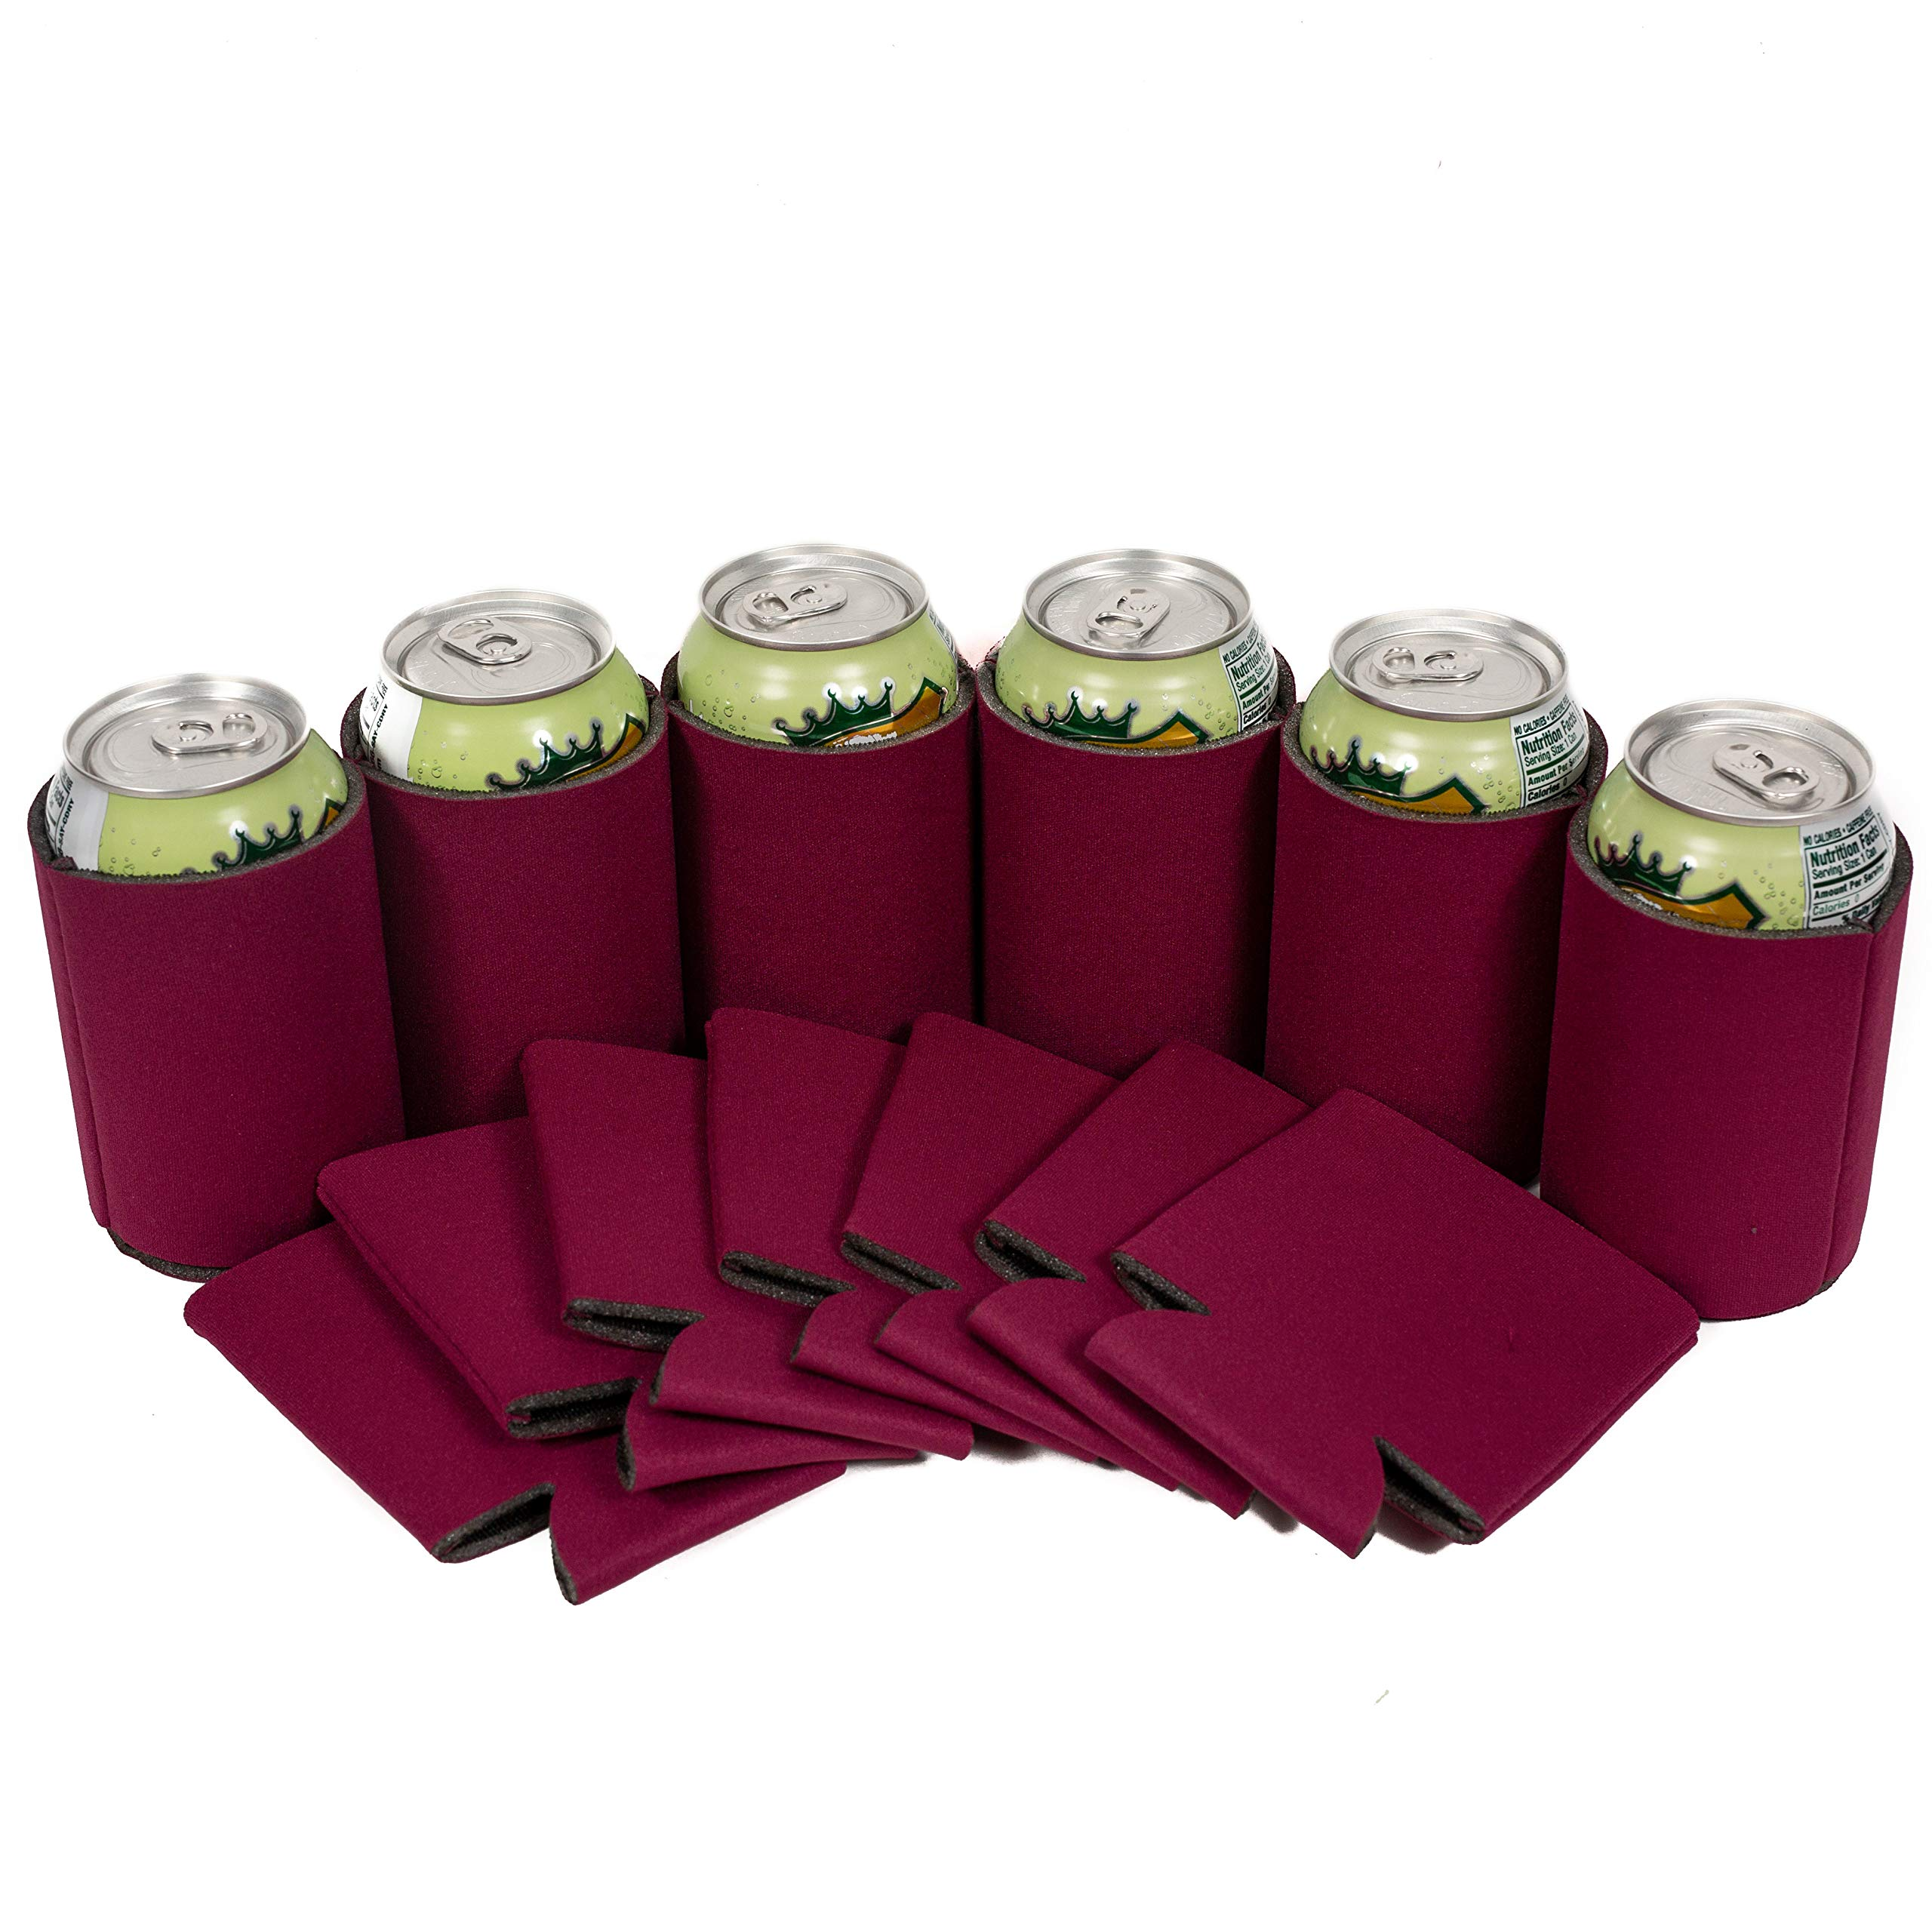 QualityPerfection 25 Burgundy Party Drink Blank Can Coolers(12,25,50,100,200 Bulk Pack) Blank Beer,Soda Coolies Sleeves   Soft,Insulated Coolers   30 Colors   Perfect For DIY Projects,Holidays,Events